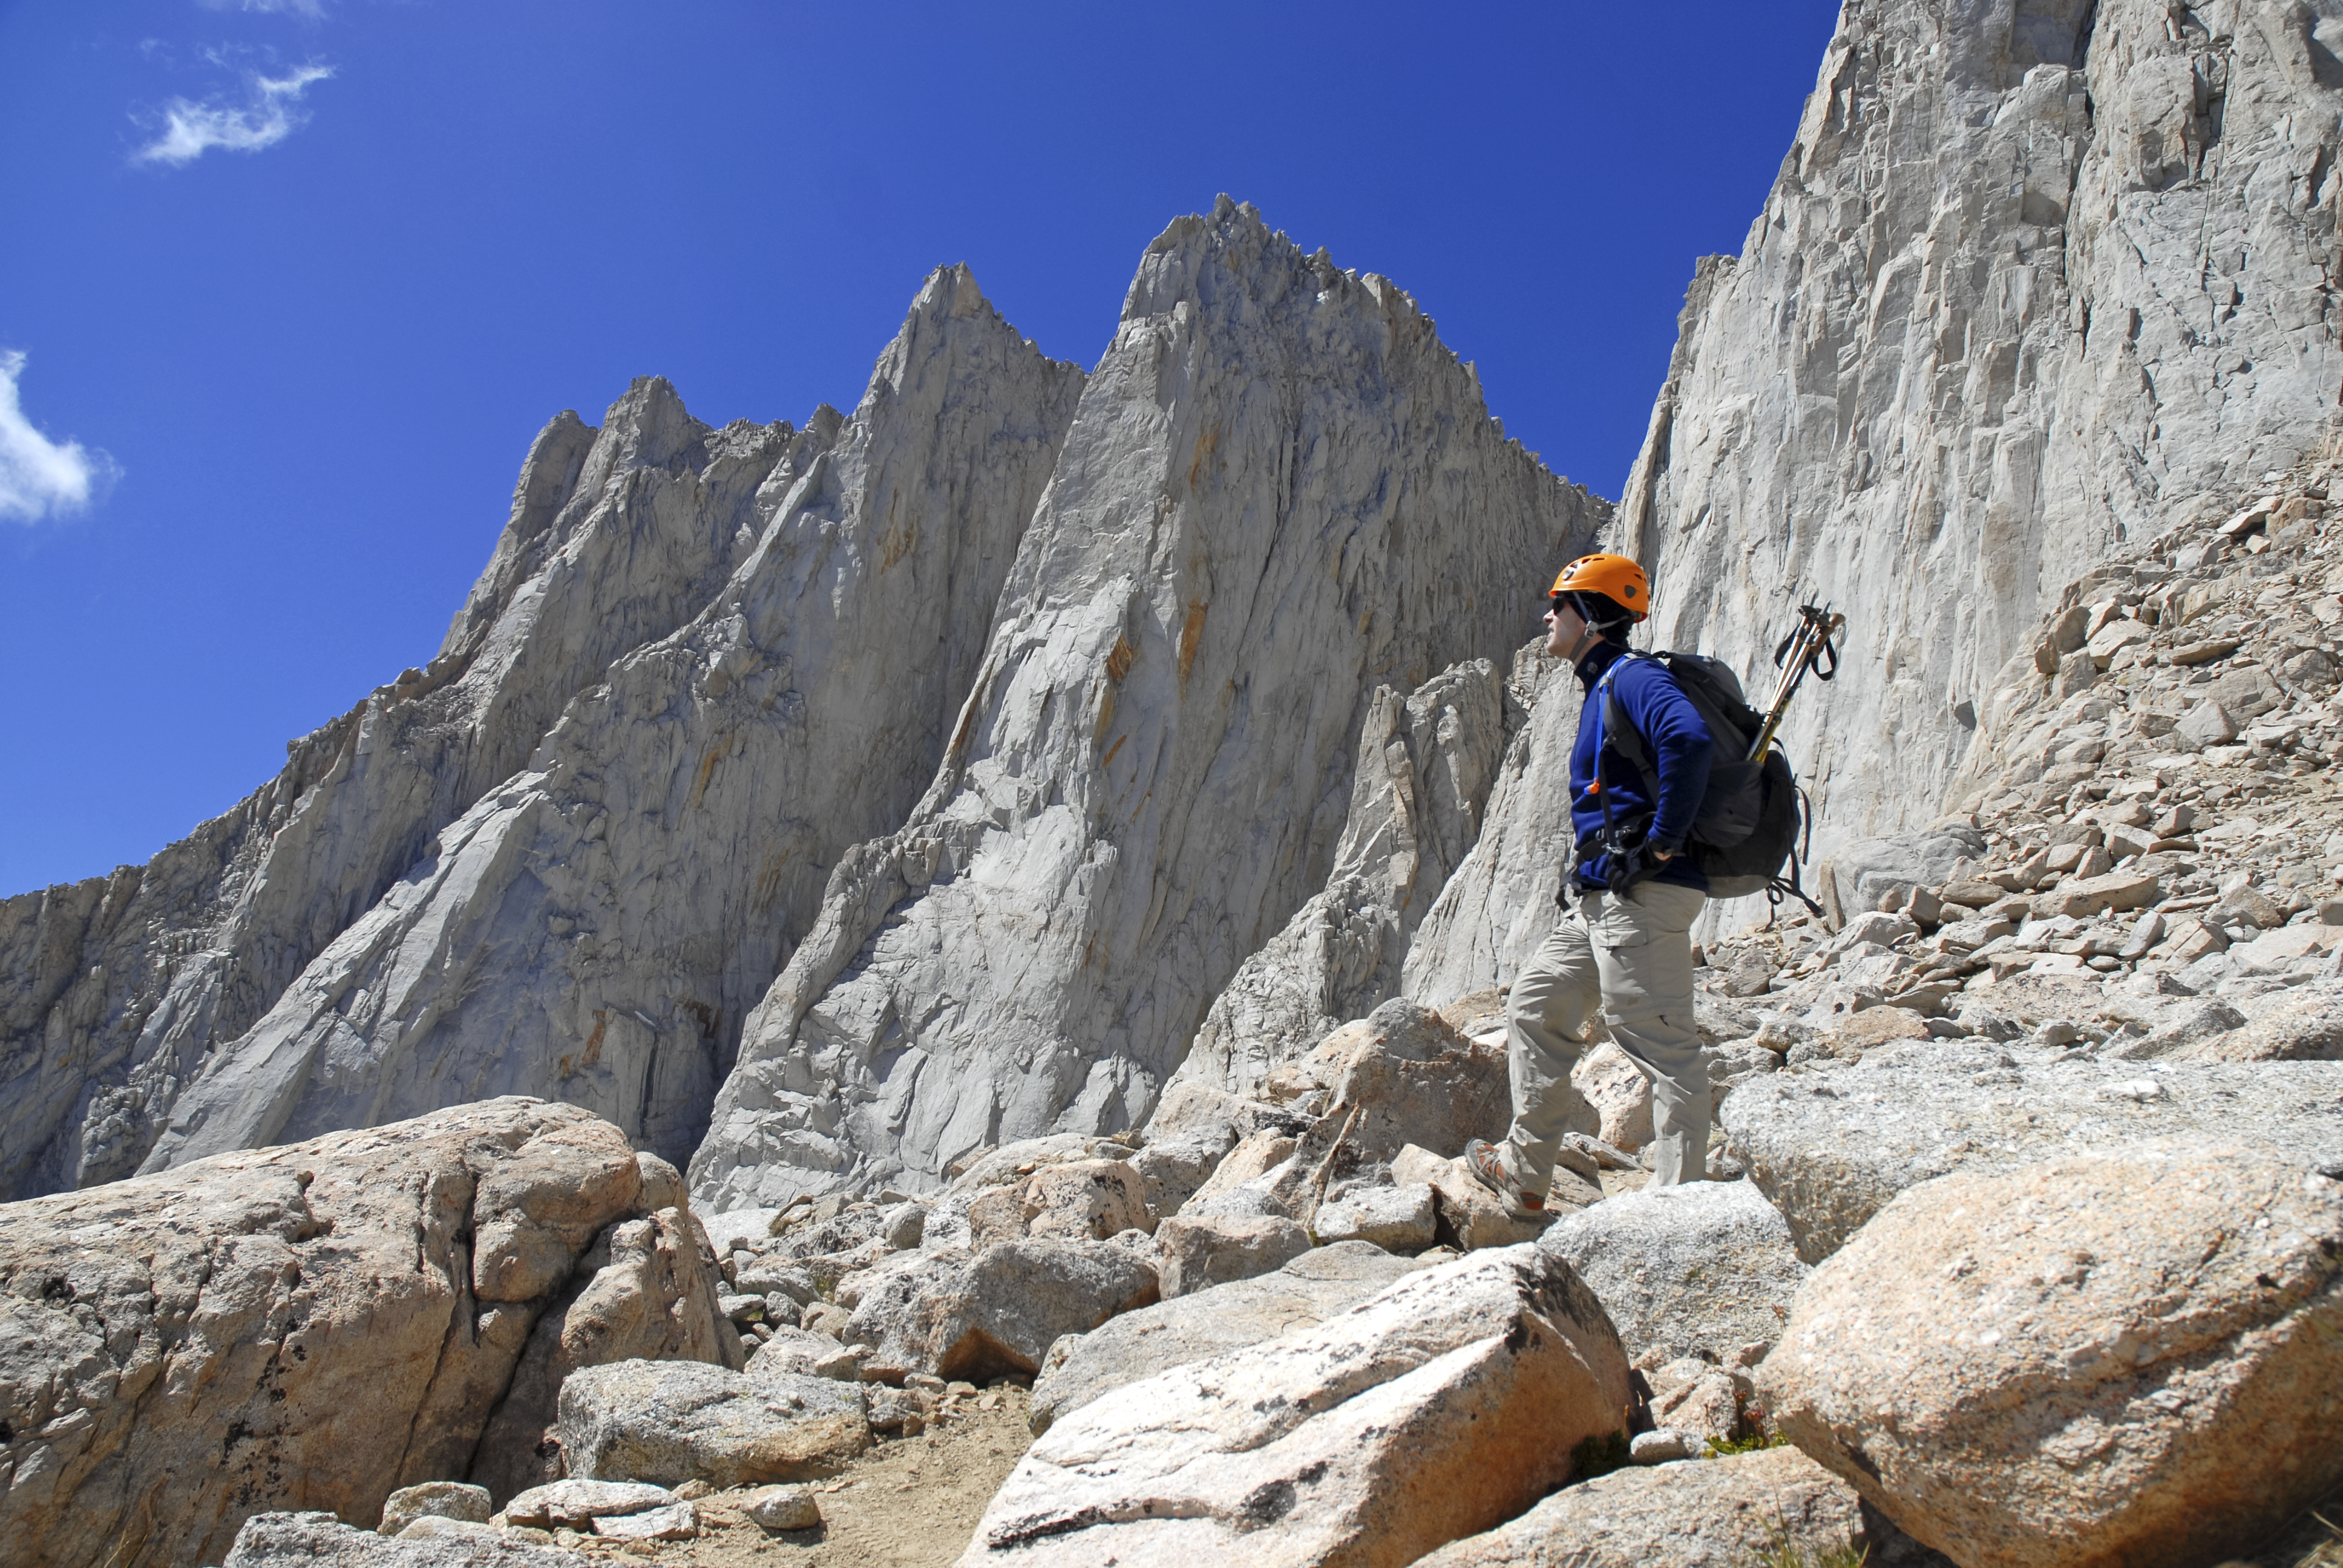 Mountain climber on Mount Whitney, Sierra Nevada Mountains